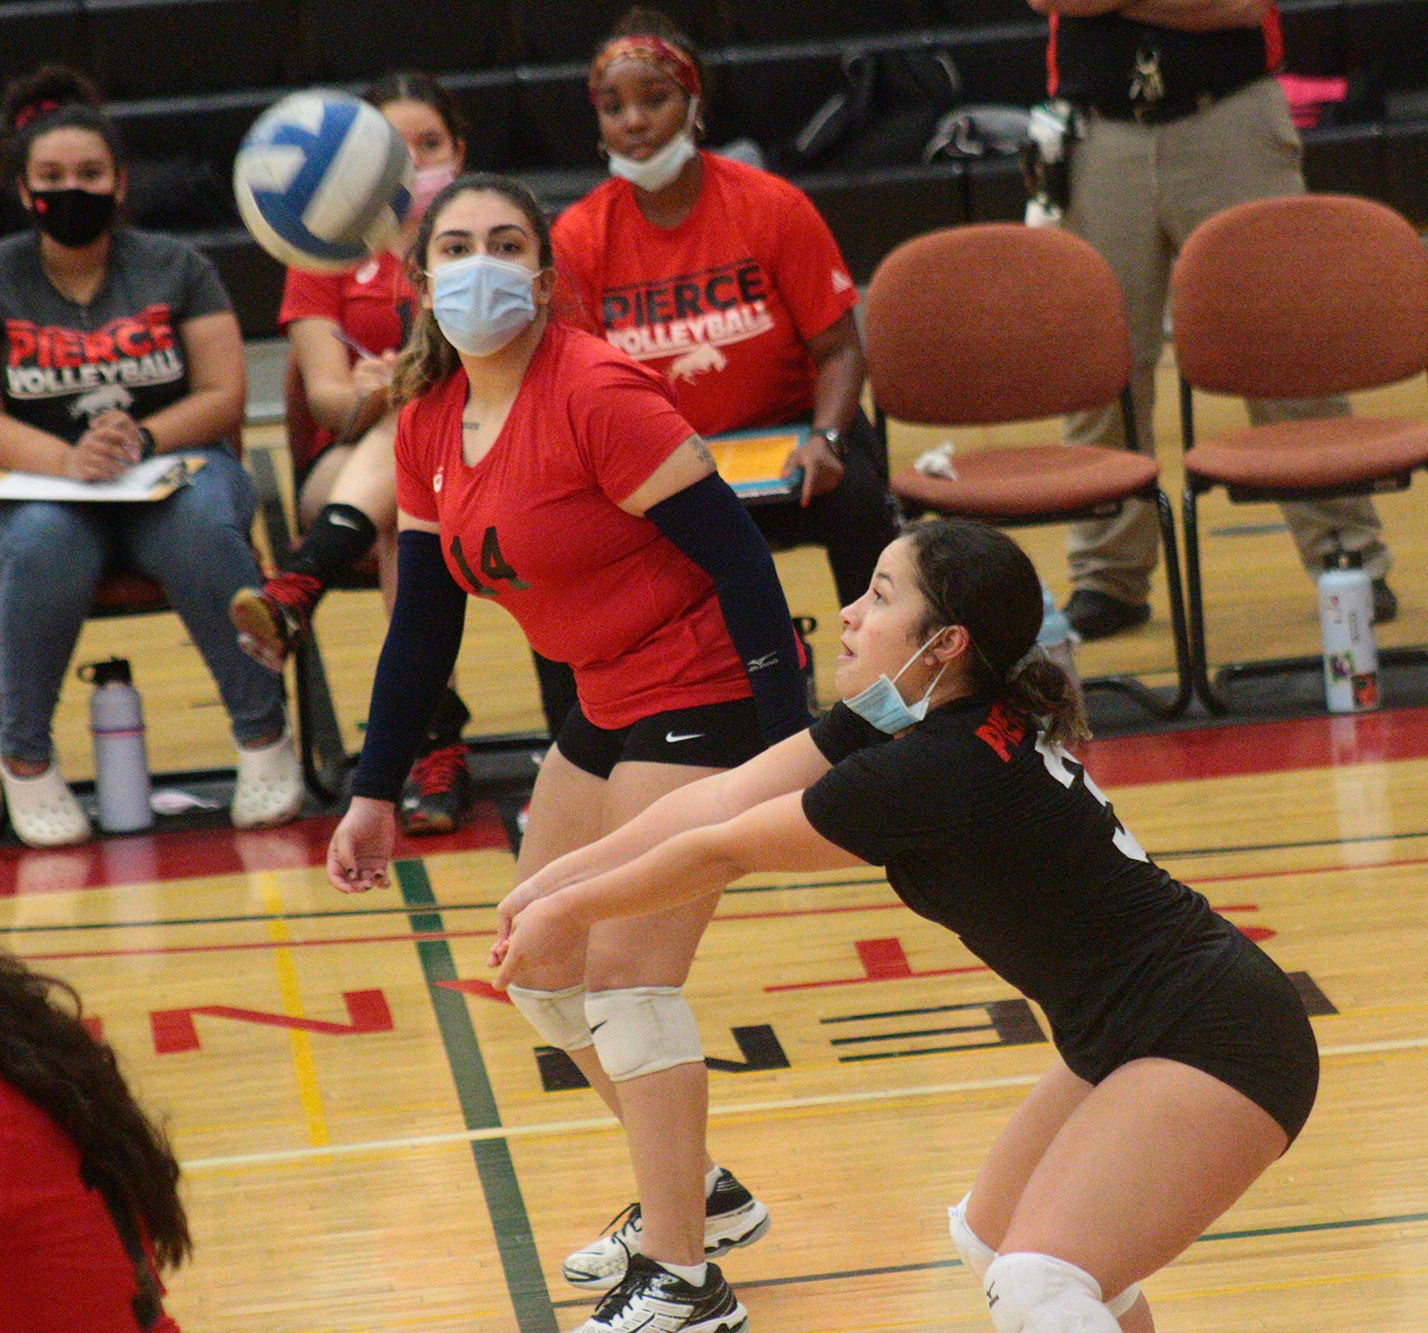 Women's volleyball lose third straight game